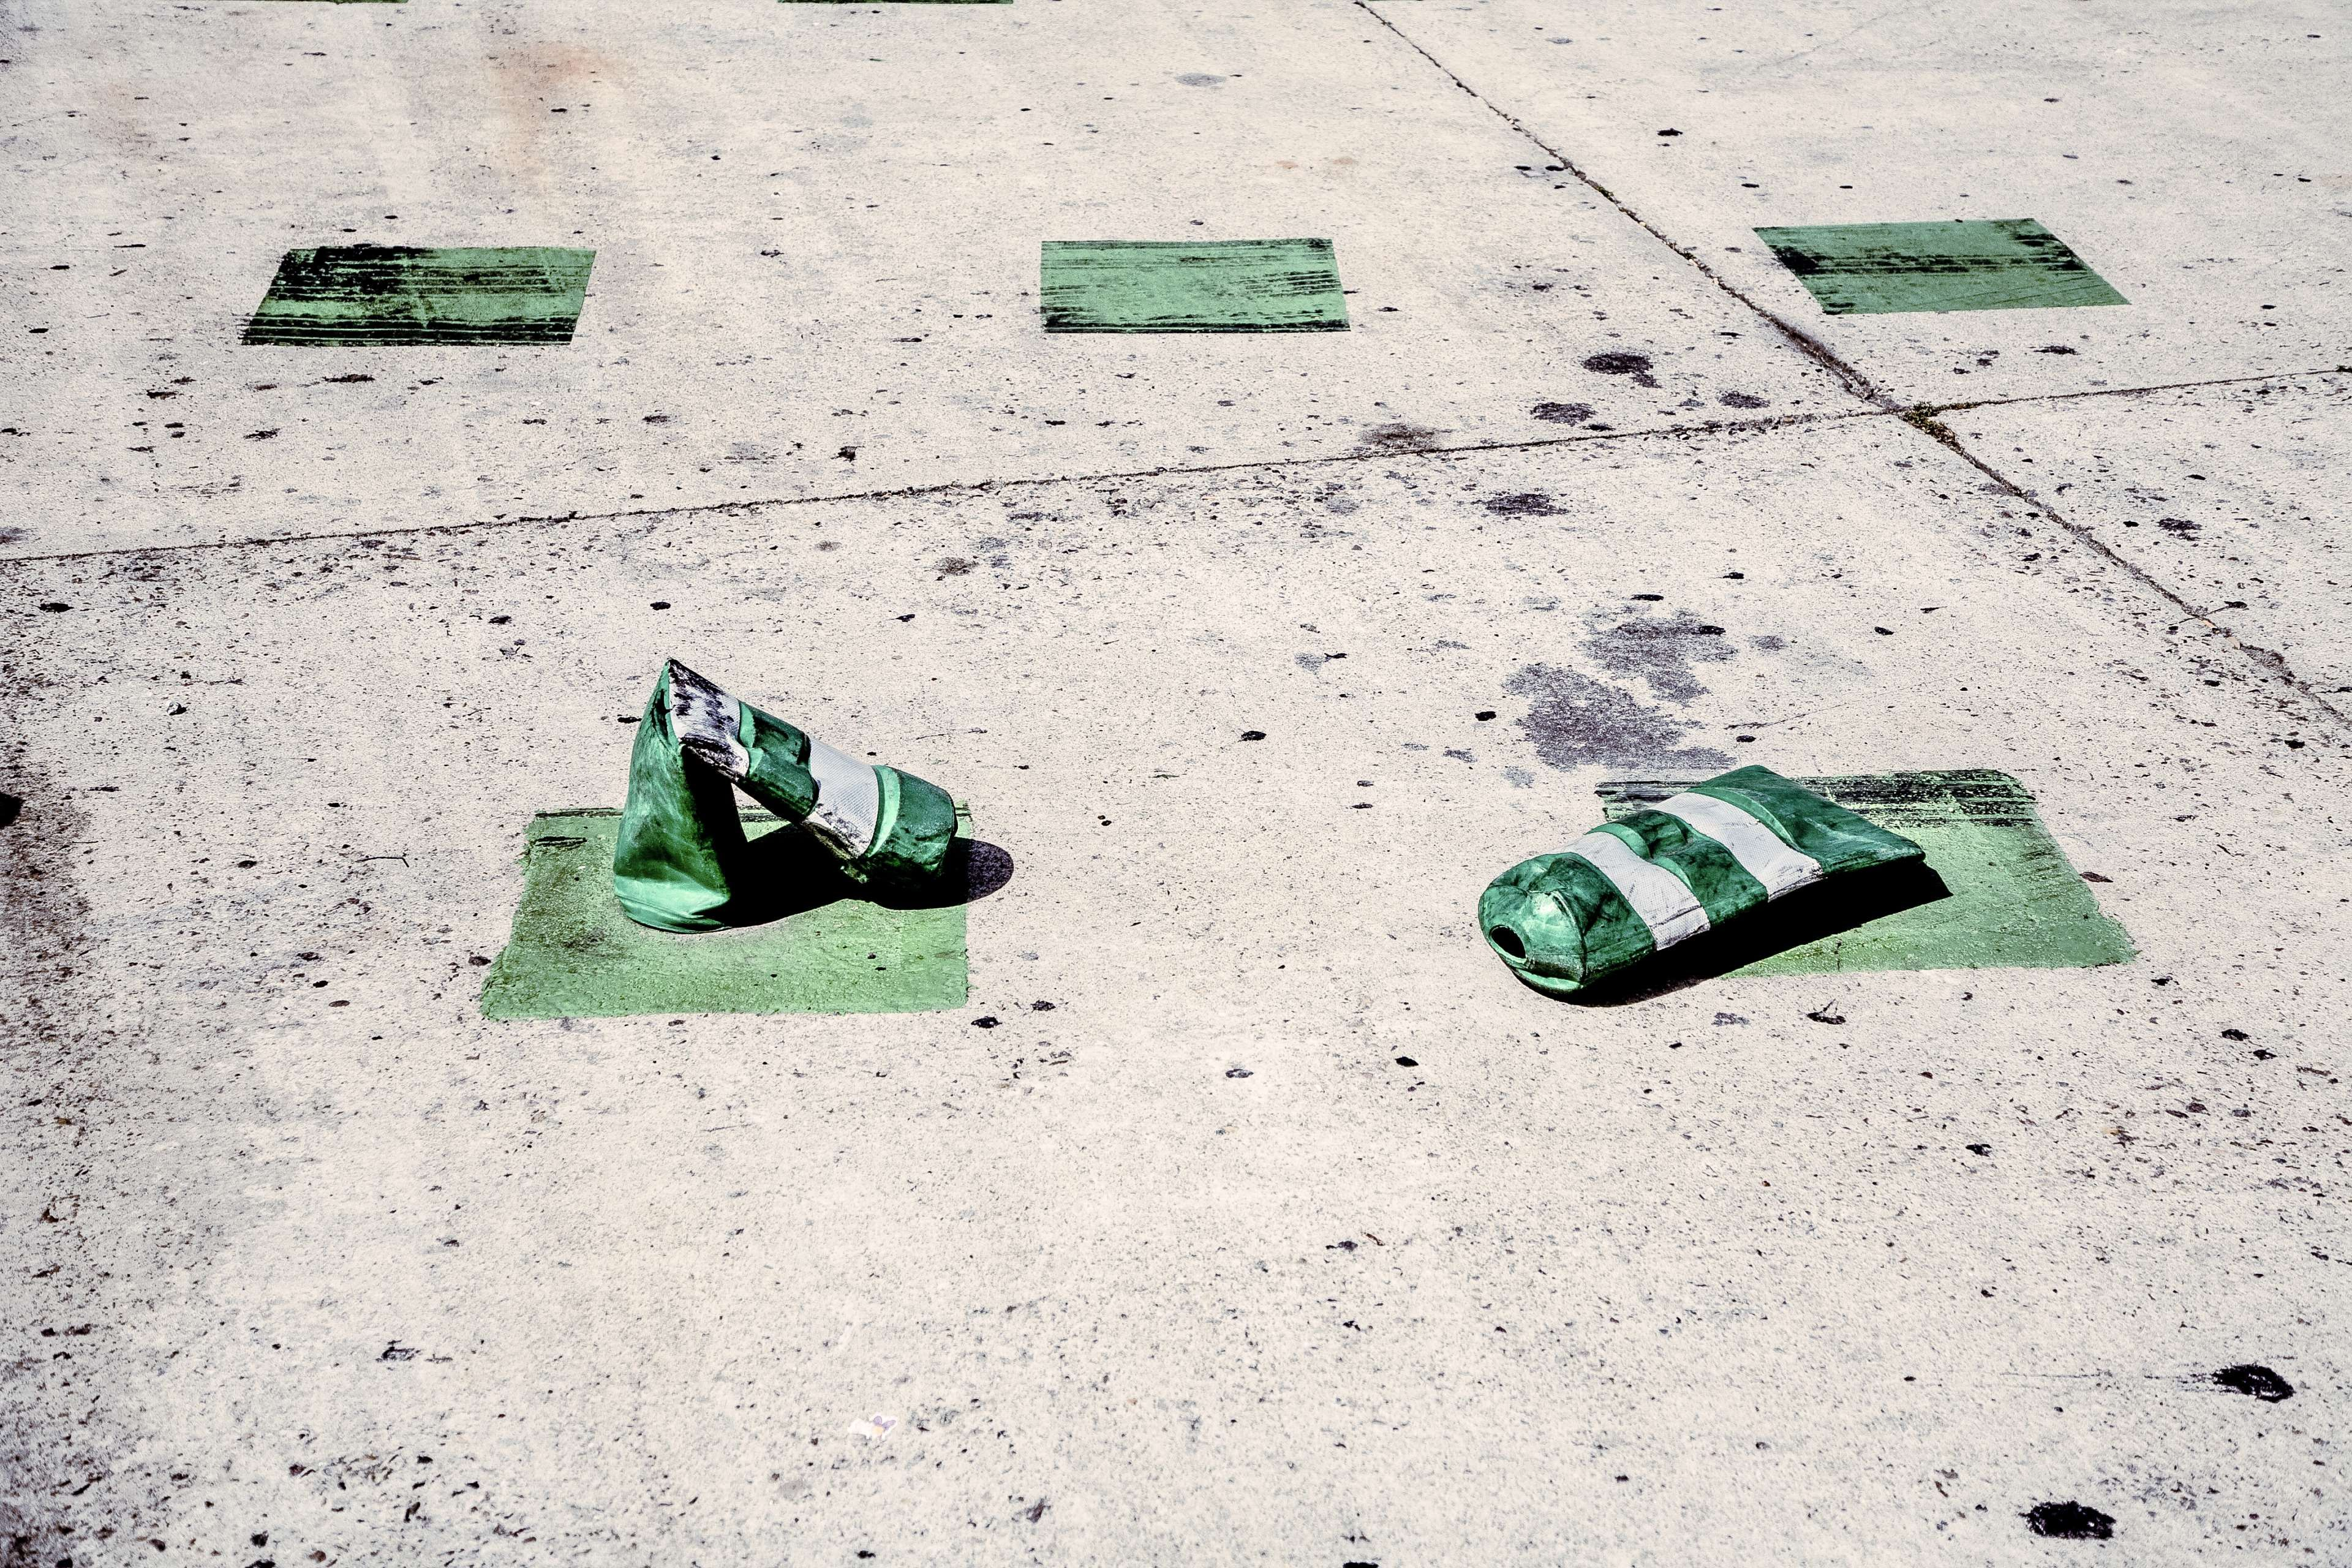 Cans Crushed Parking Lot Recreation Road Road Marking Street Symbol Urban Green Free Images Concrete Wallpaper road trees snow marking snowy